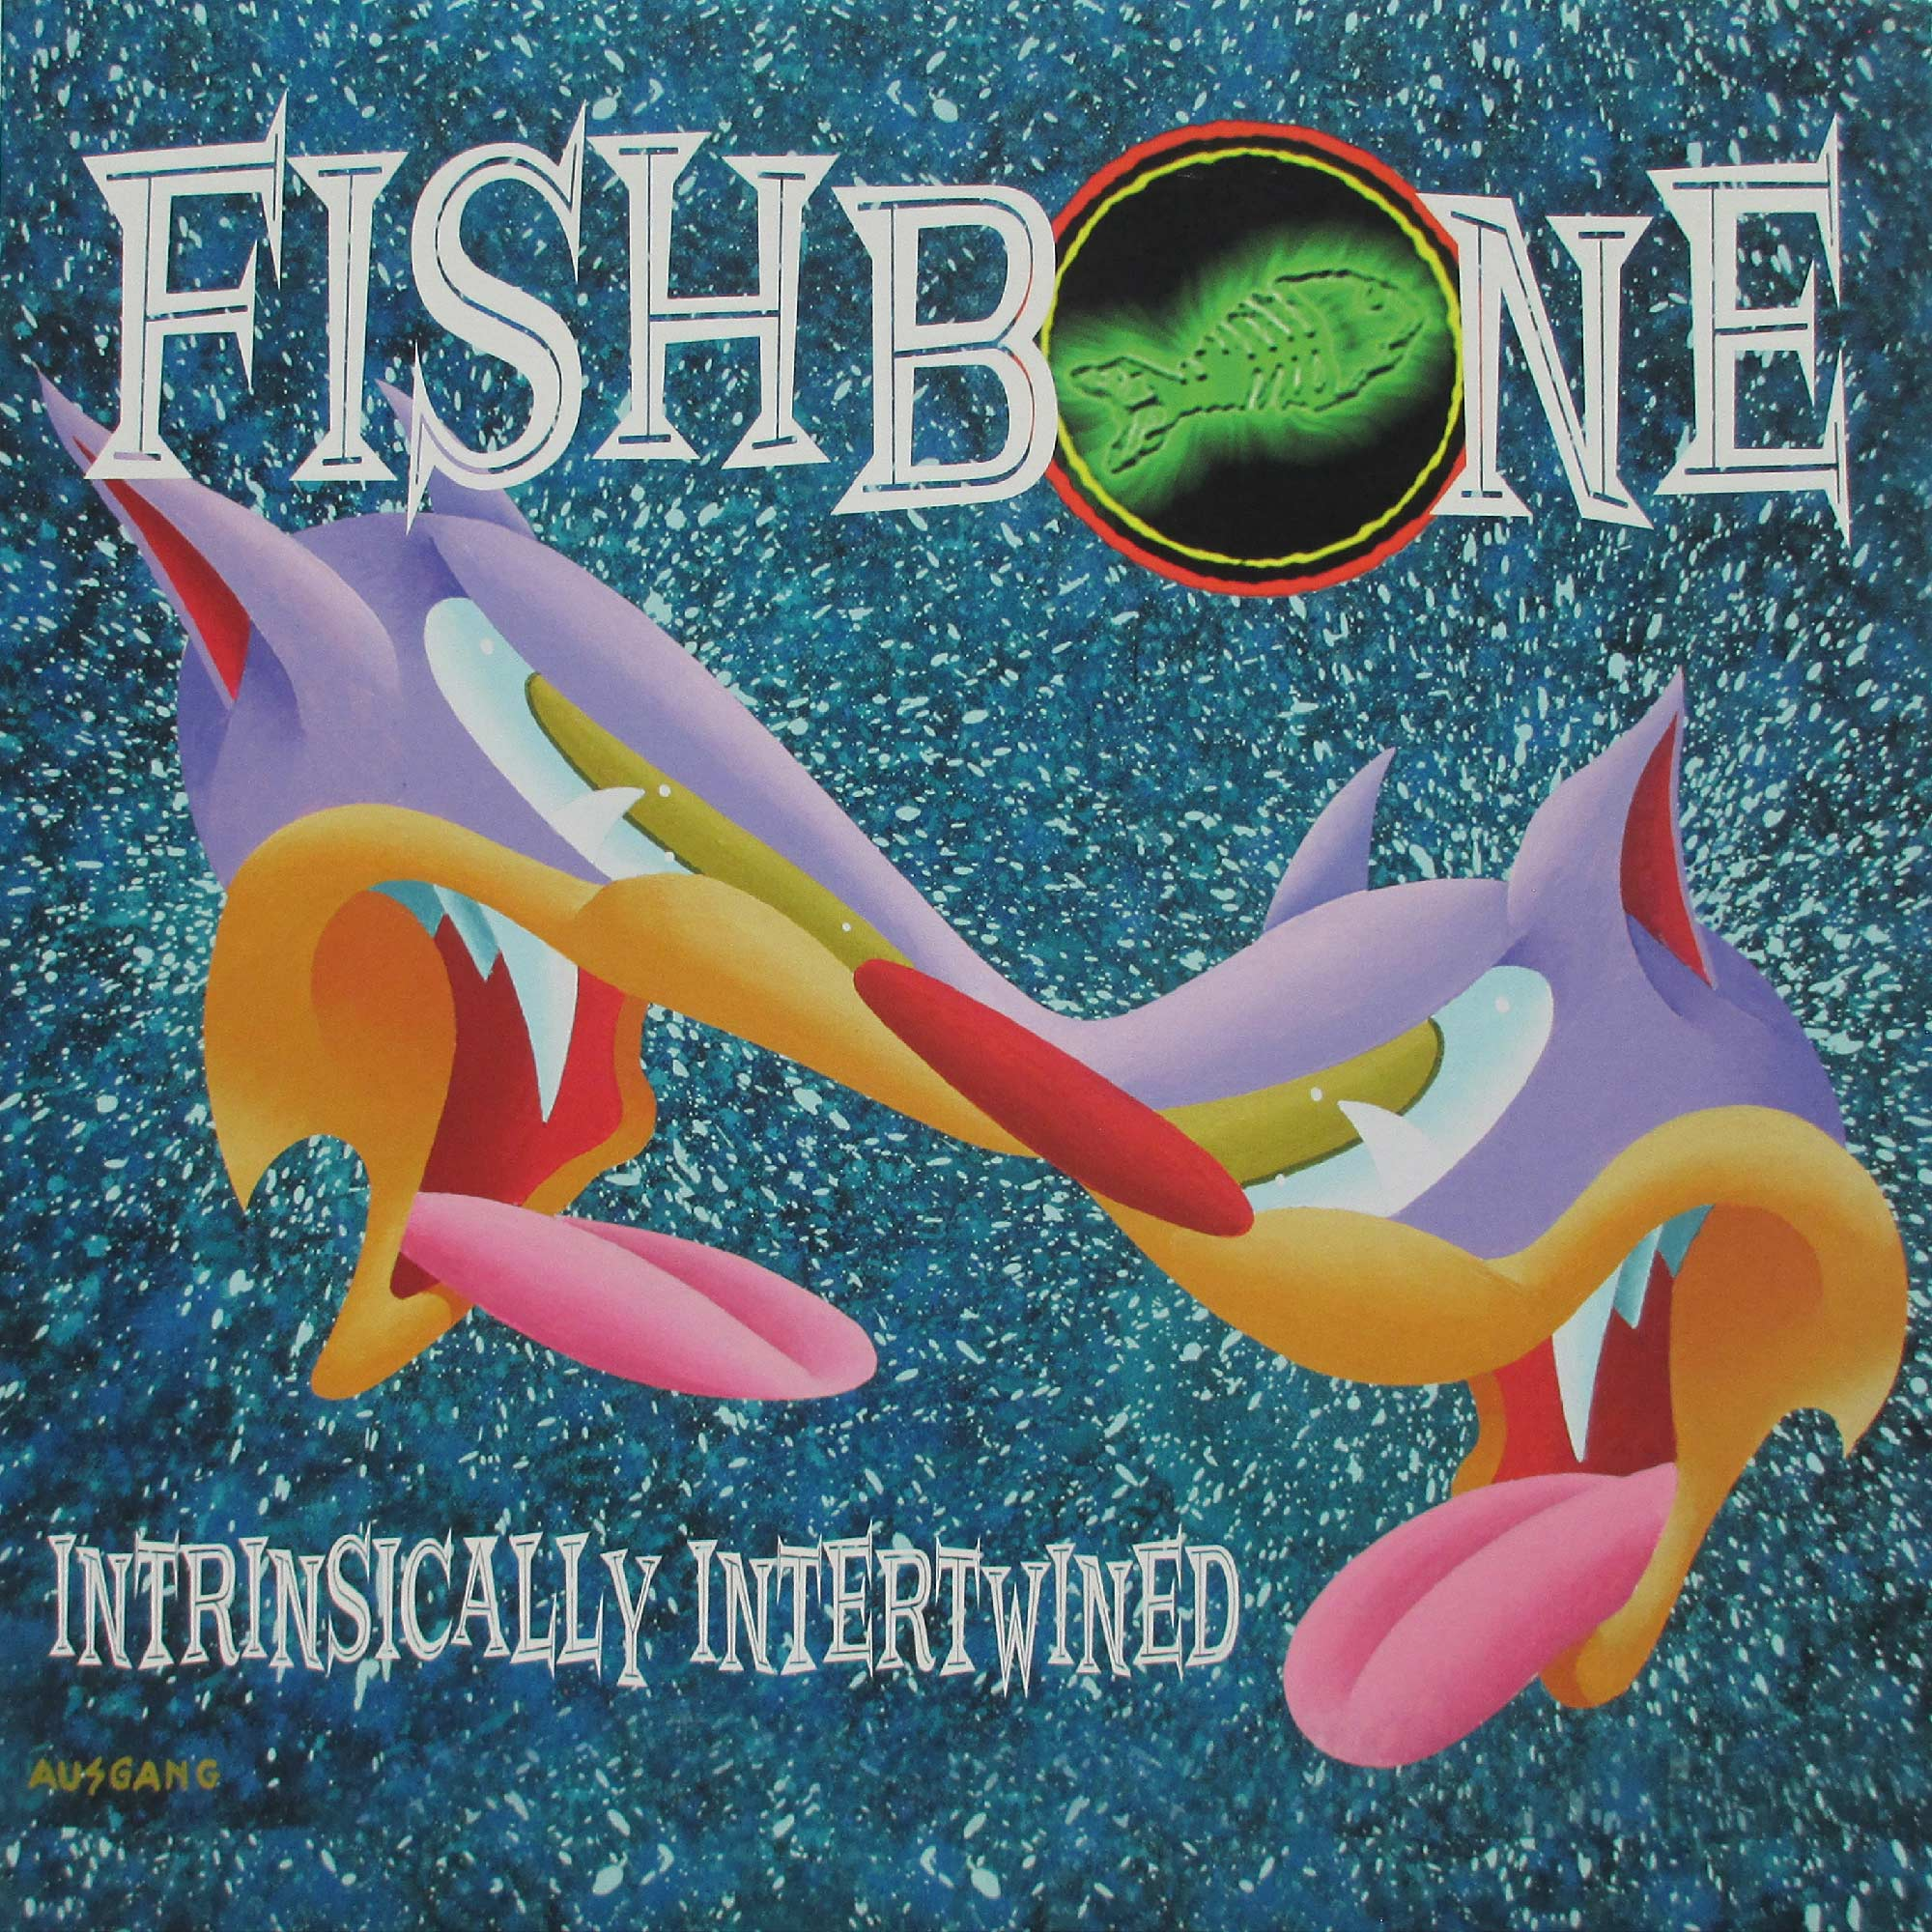 Fishbone, Intrinsically Intertwined